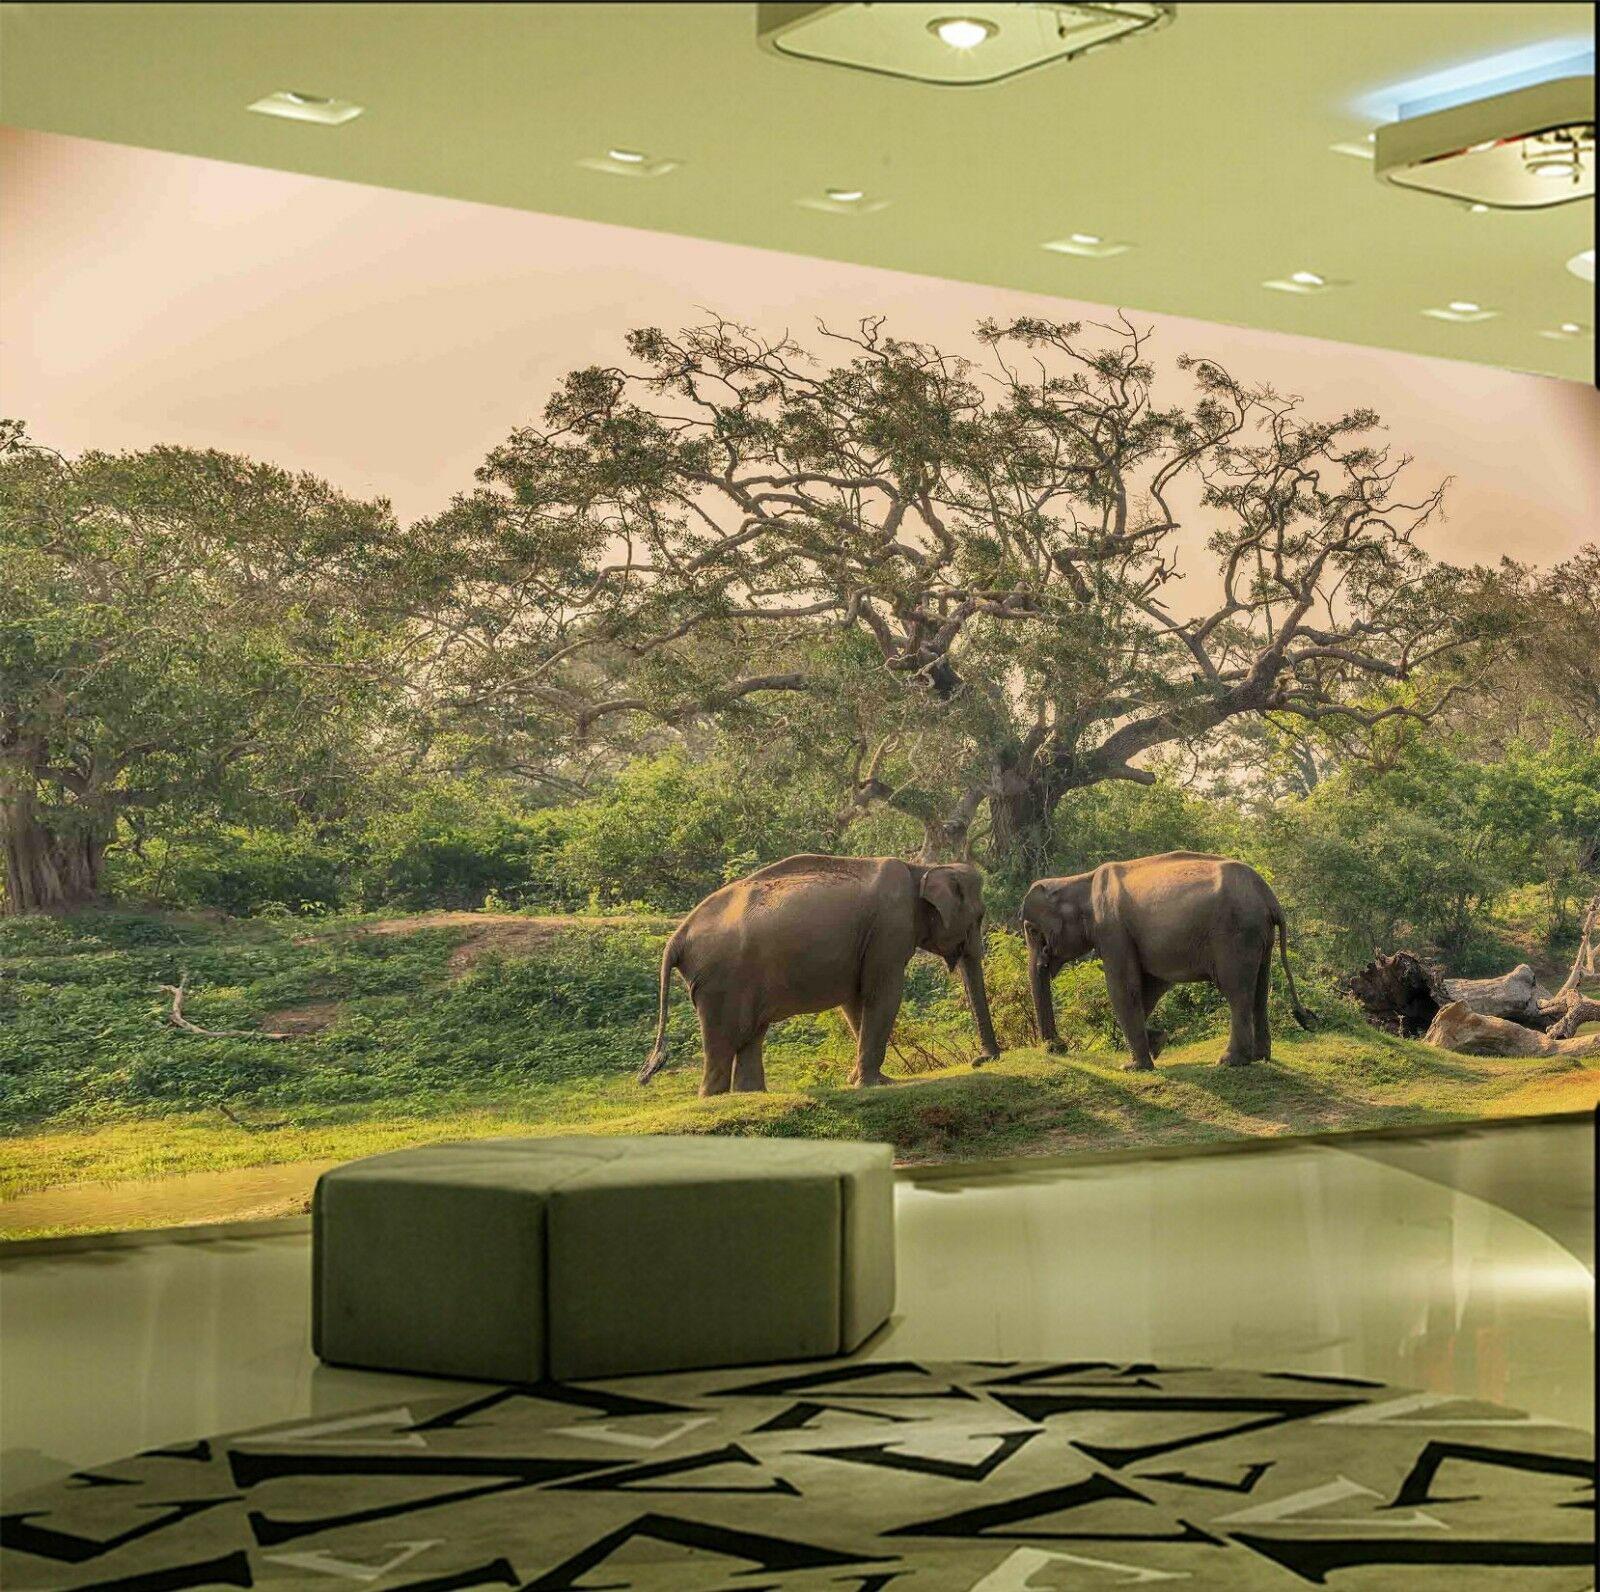 3D Hill Elephant 7161 Wallpaper Mural Wall Print Wall Wallpaper Murals US Lemon